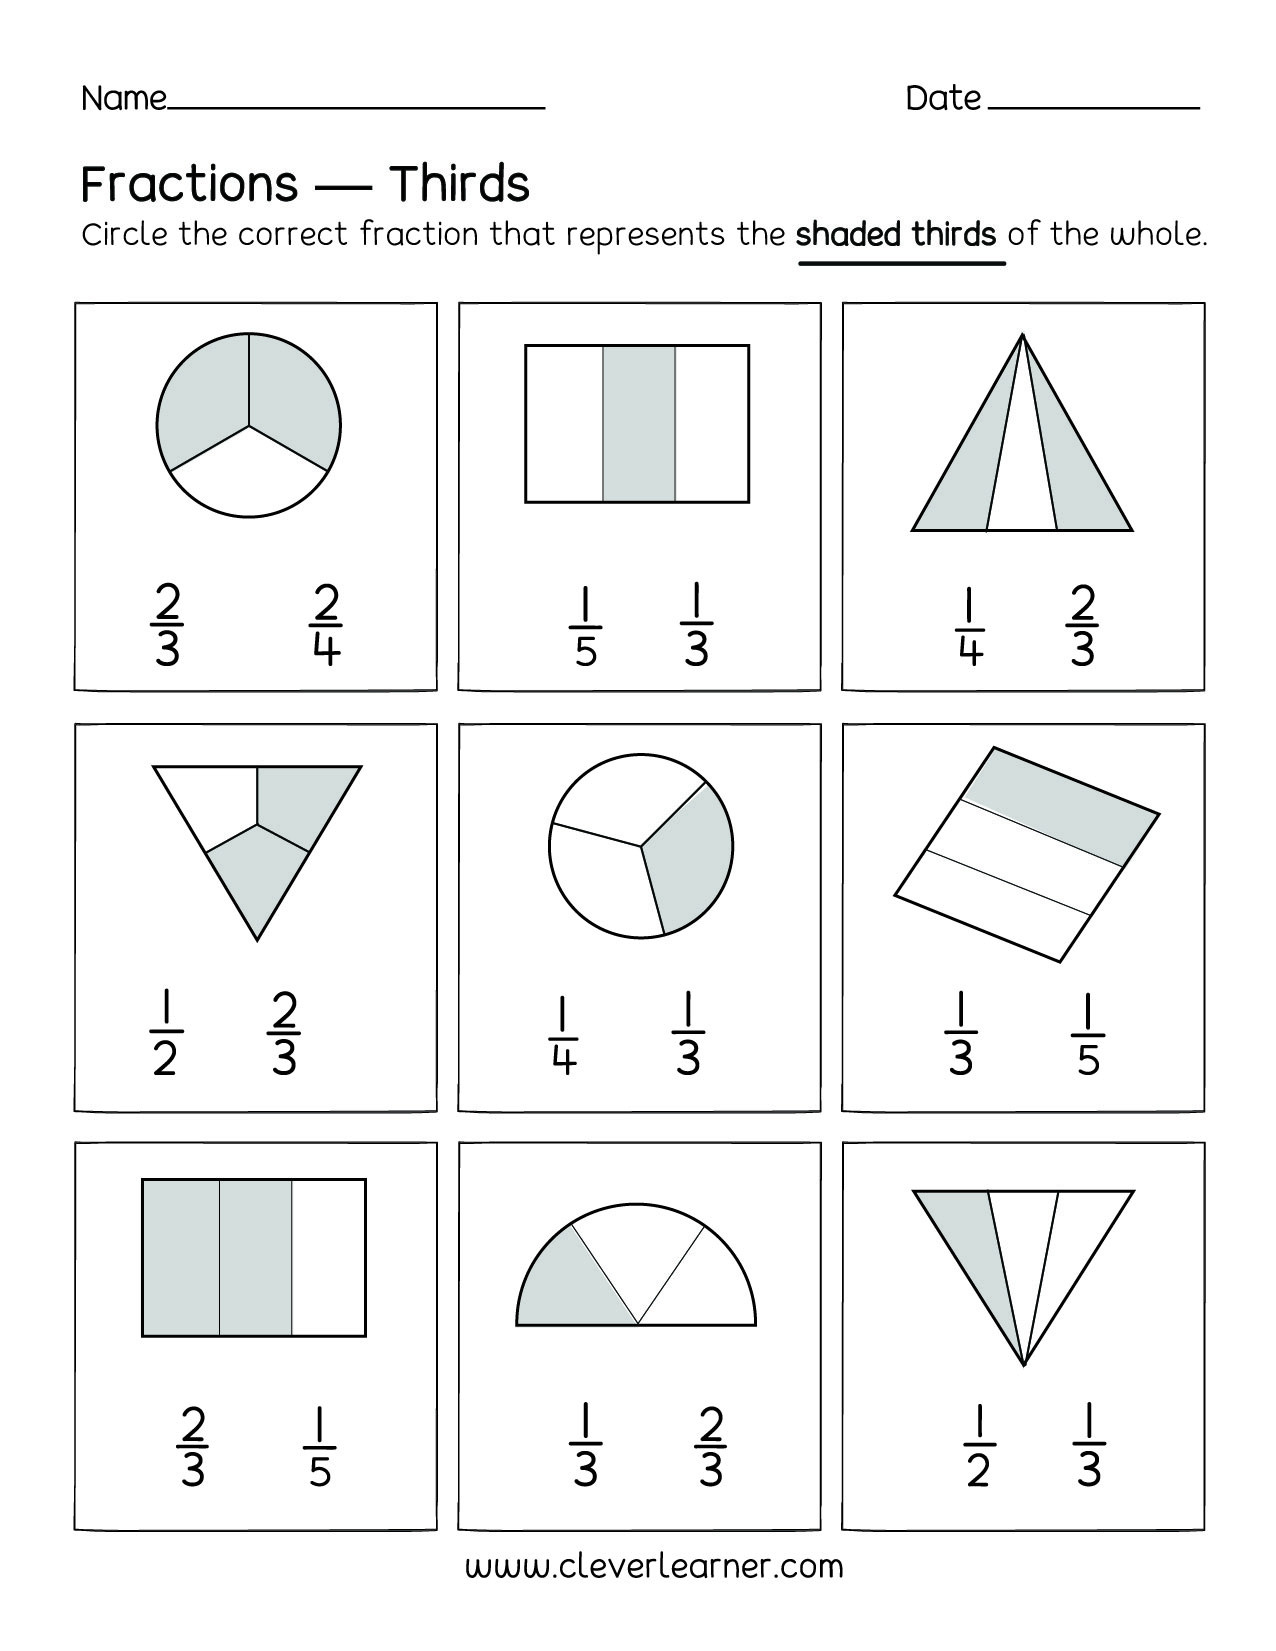 Fractions Worksheets First Grade Fun Activity Fractions Thirds Worksheets for Children